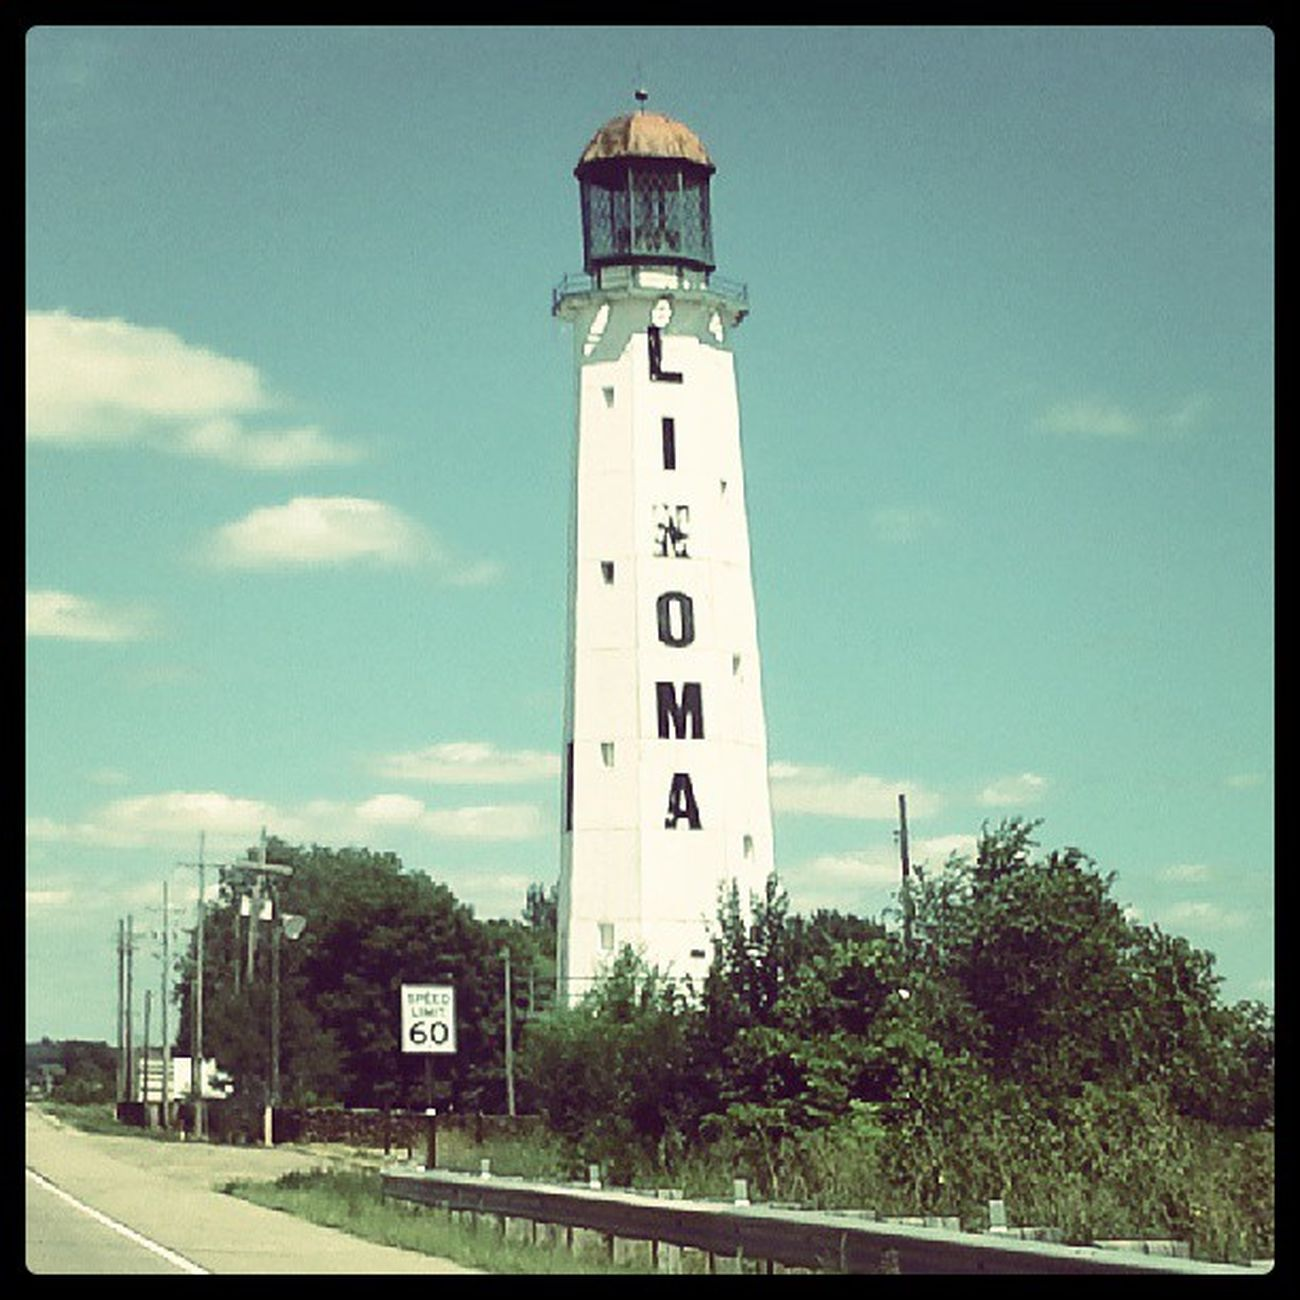 LINOMA LINOMA Lincoln Omaha Lake lighthouse signage SIGN typography lettergetter lettering halfway